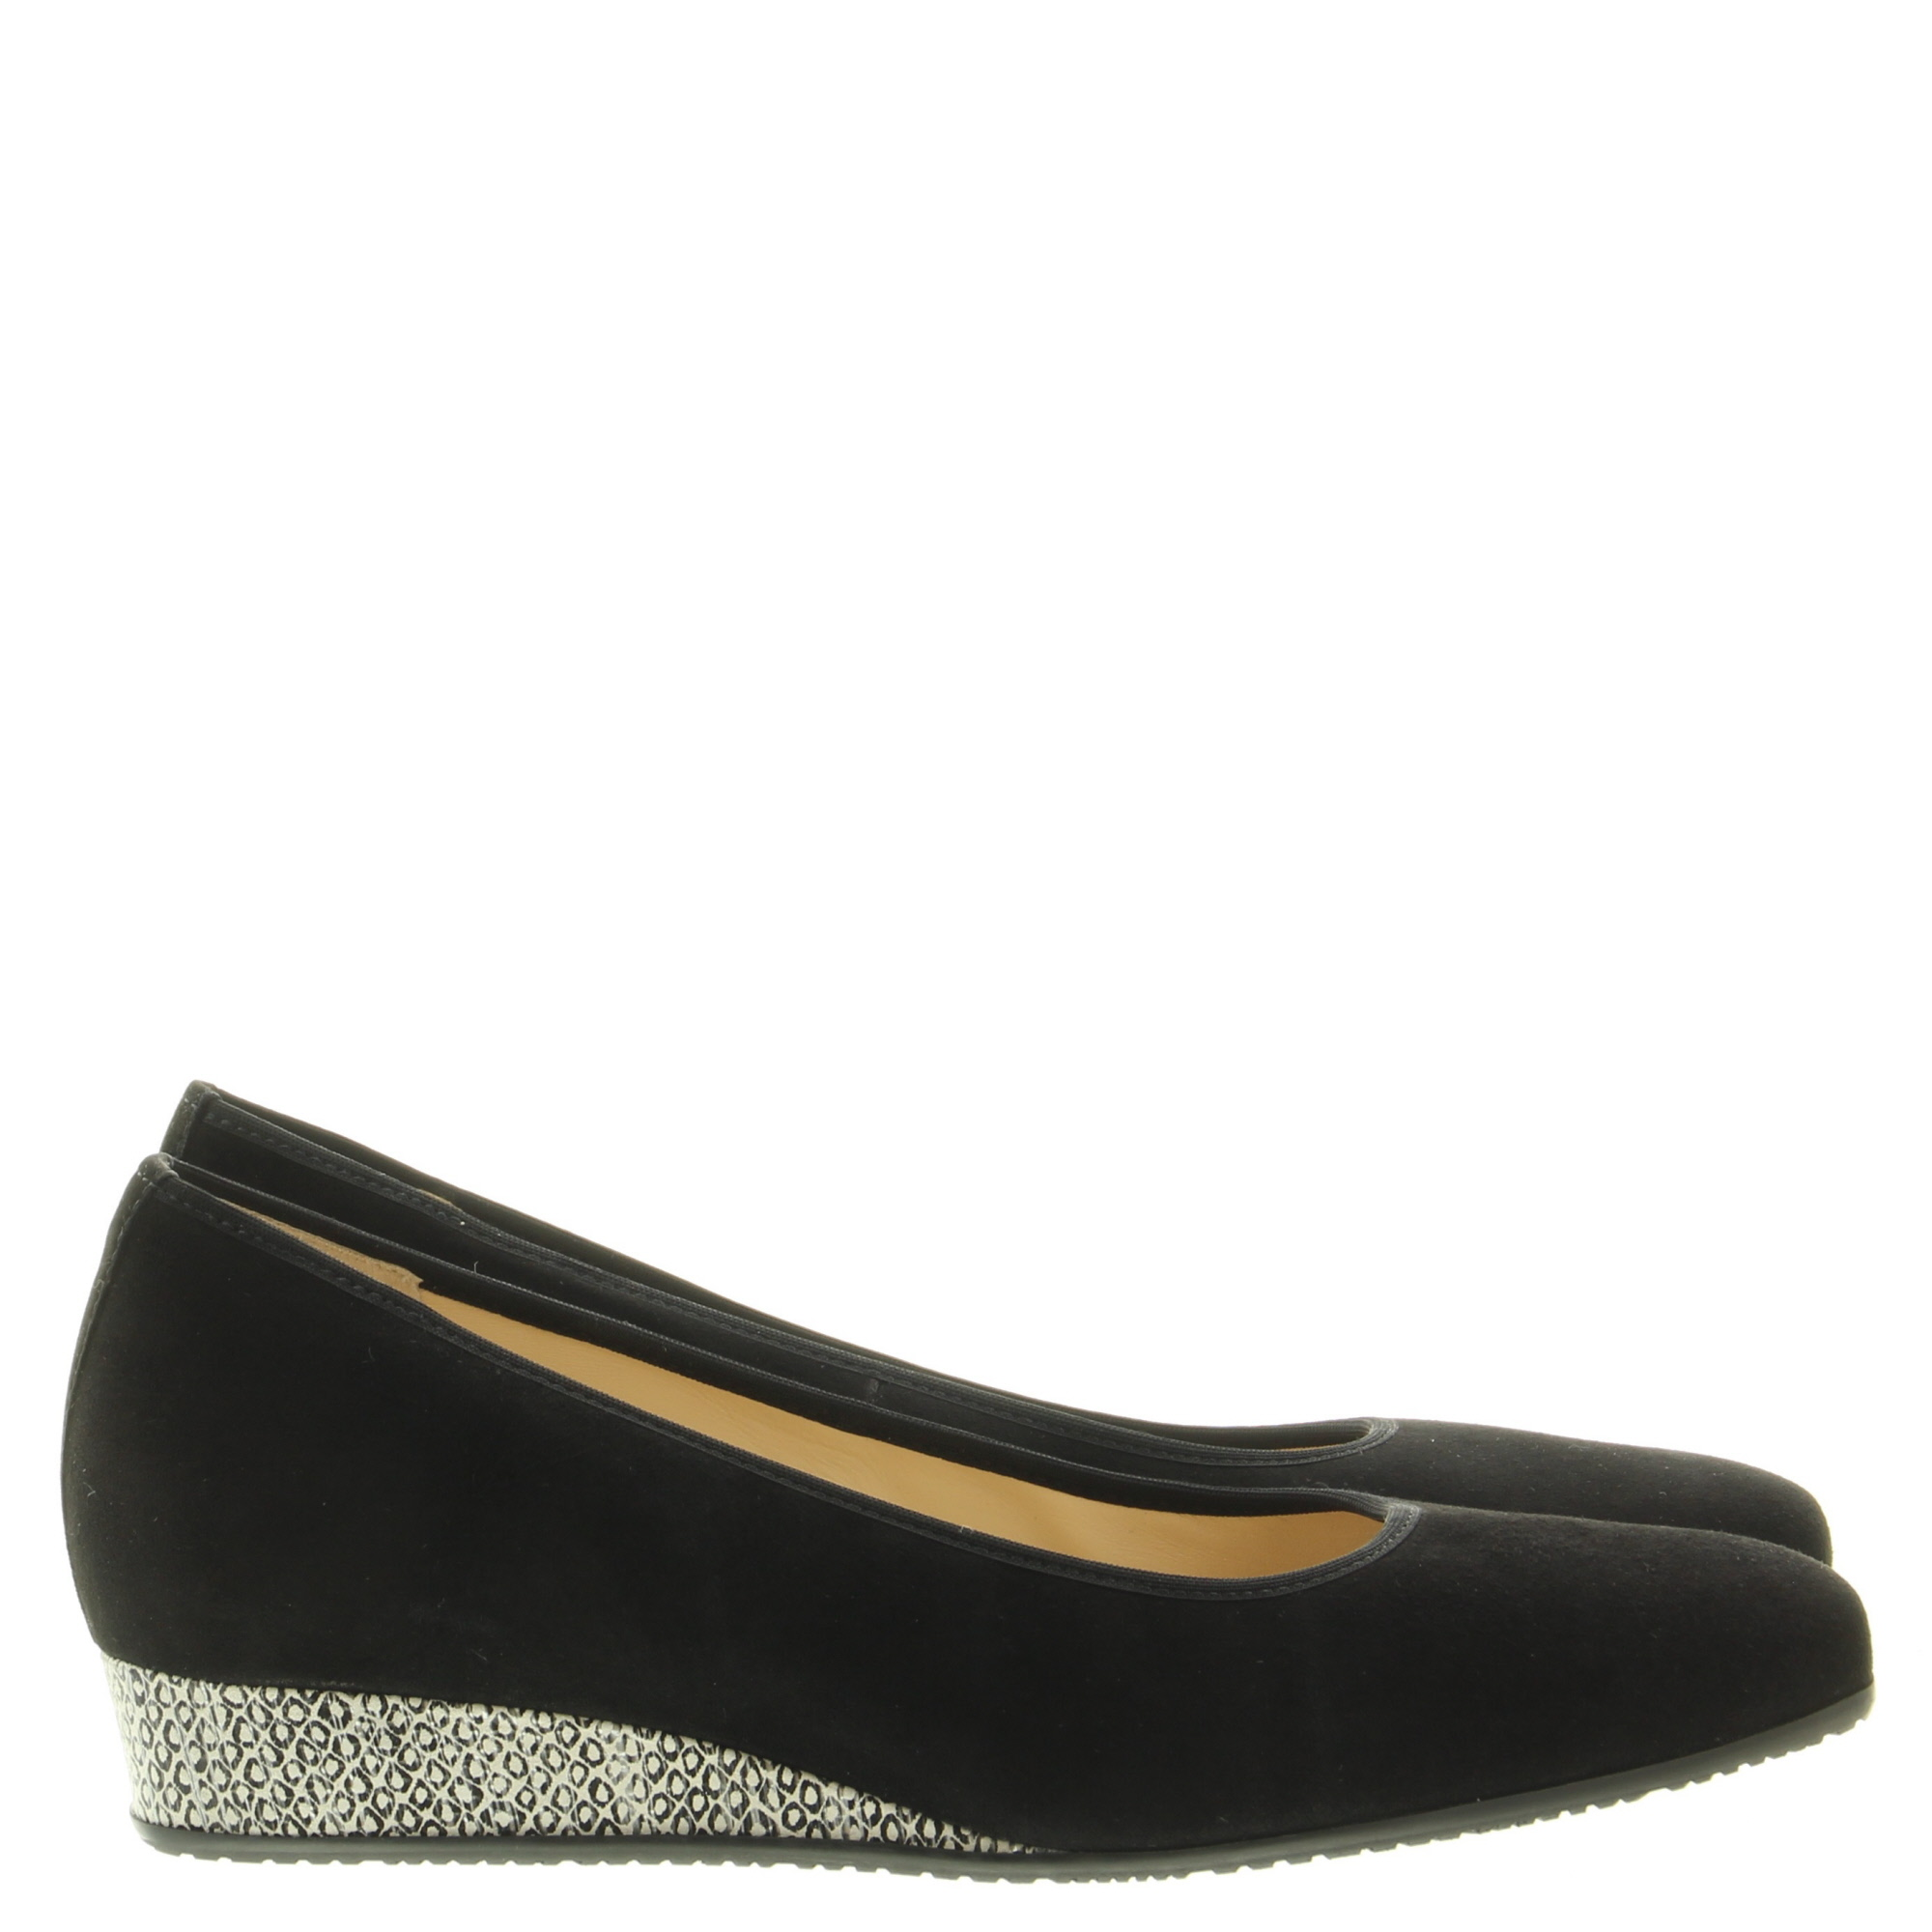 Hassia Shoes 302202 Cannes 0104 Schwarz Offwhite